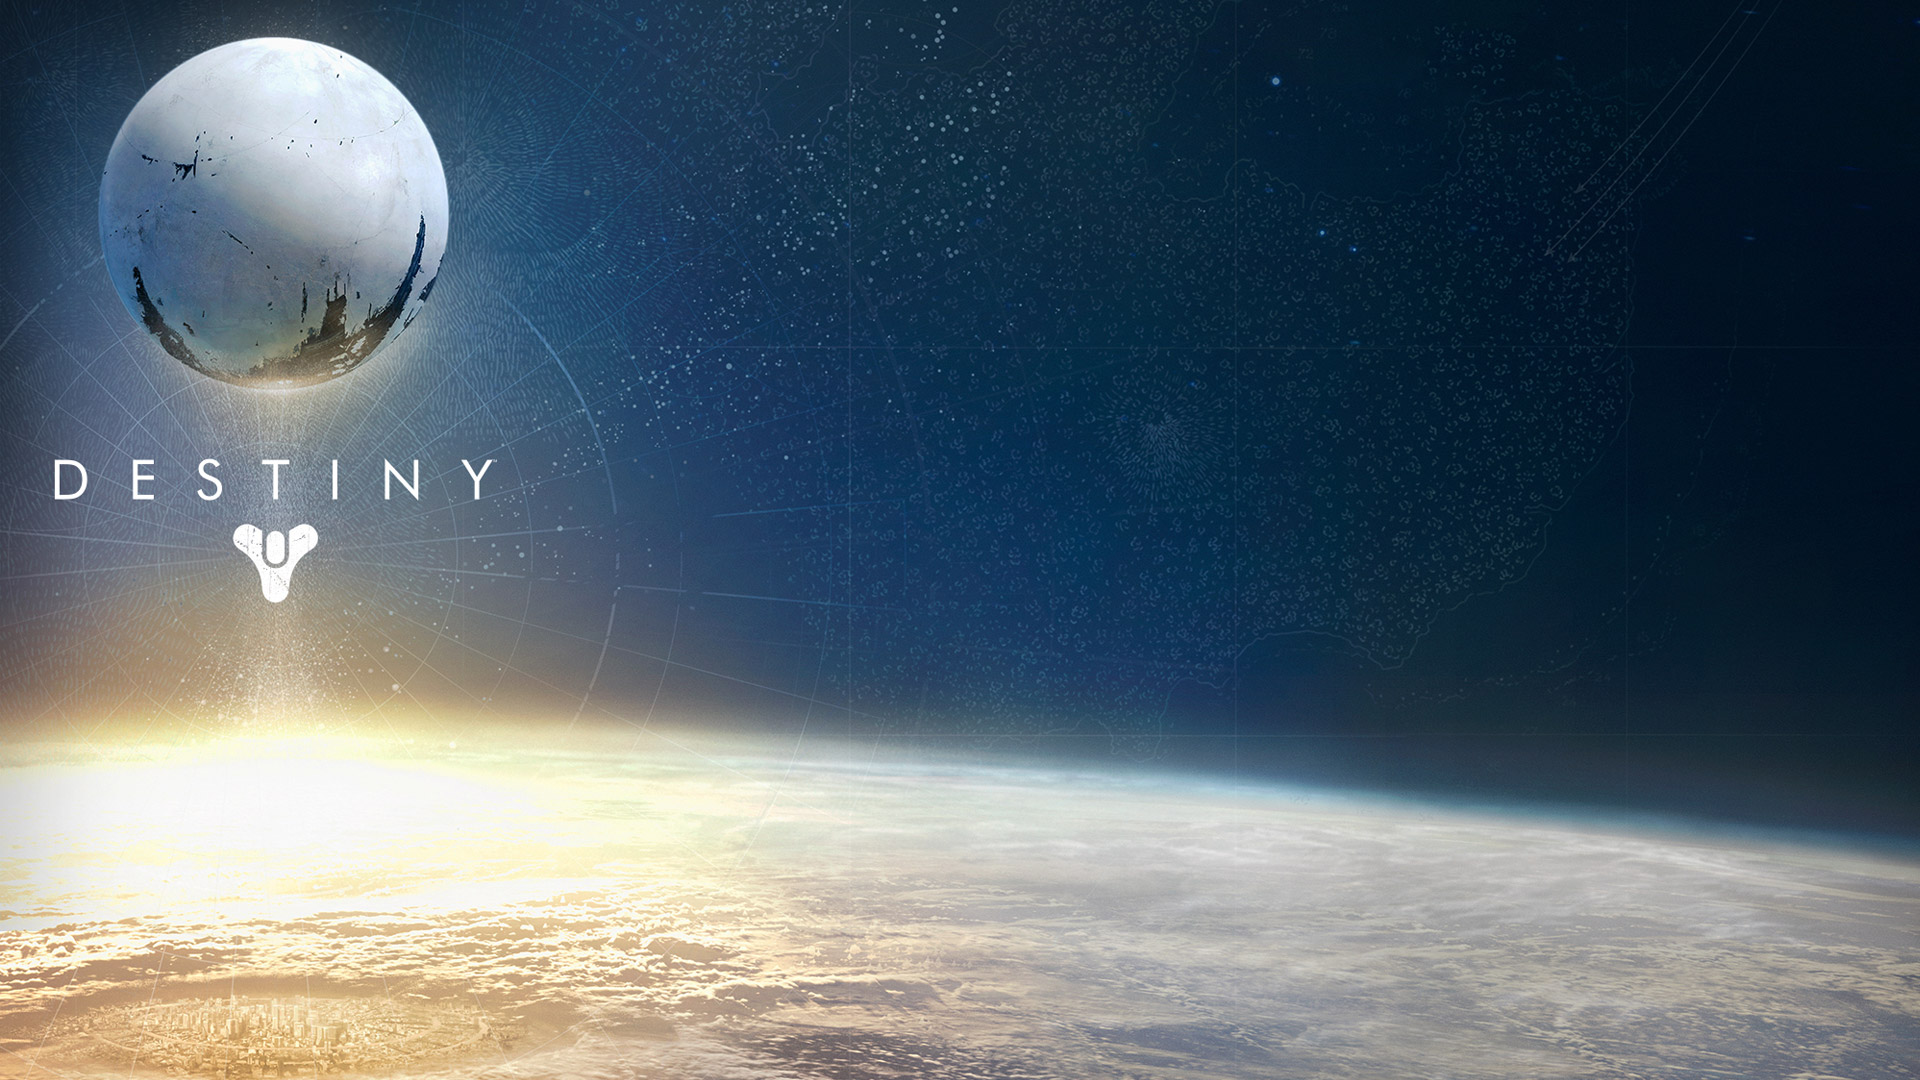 Destiny Background